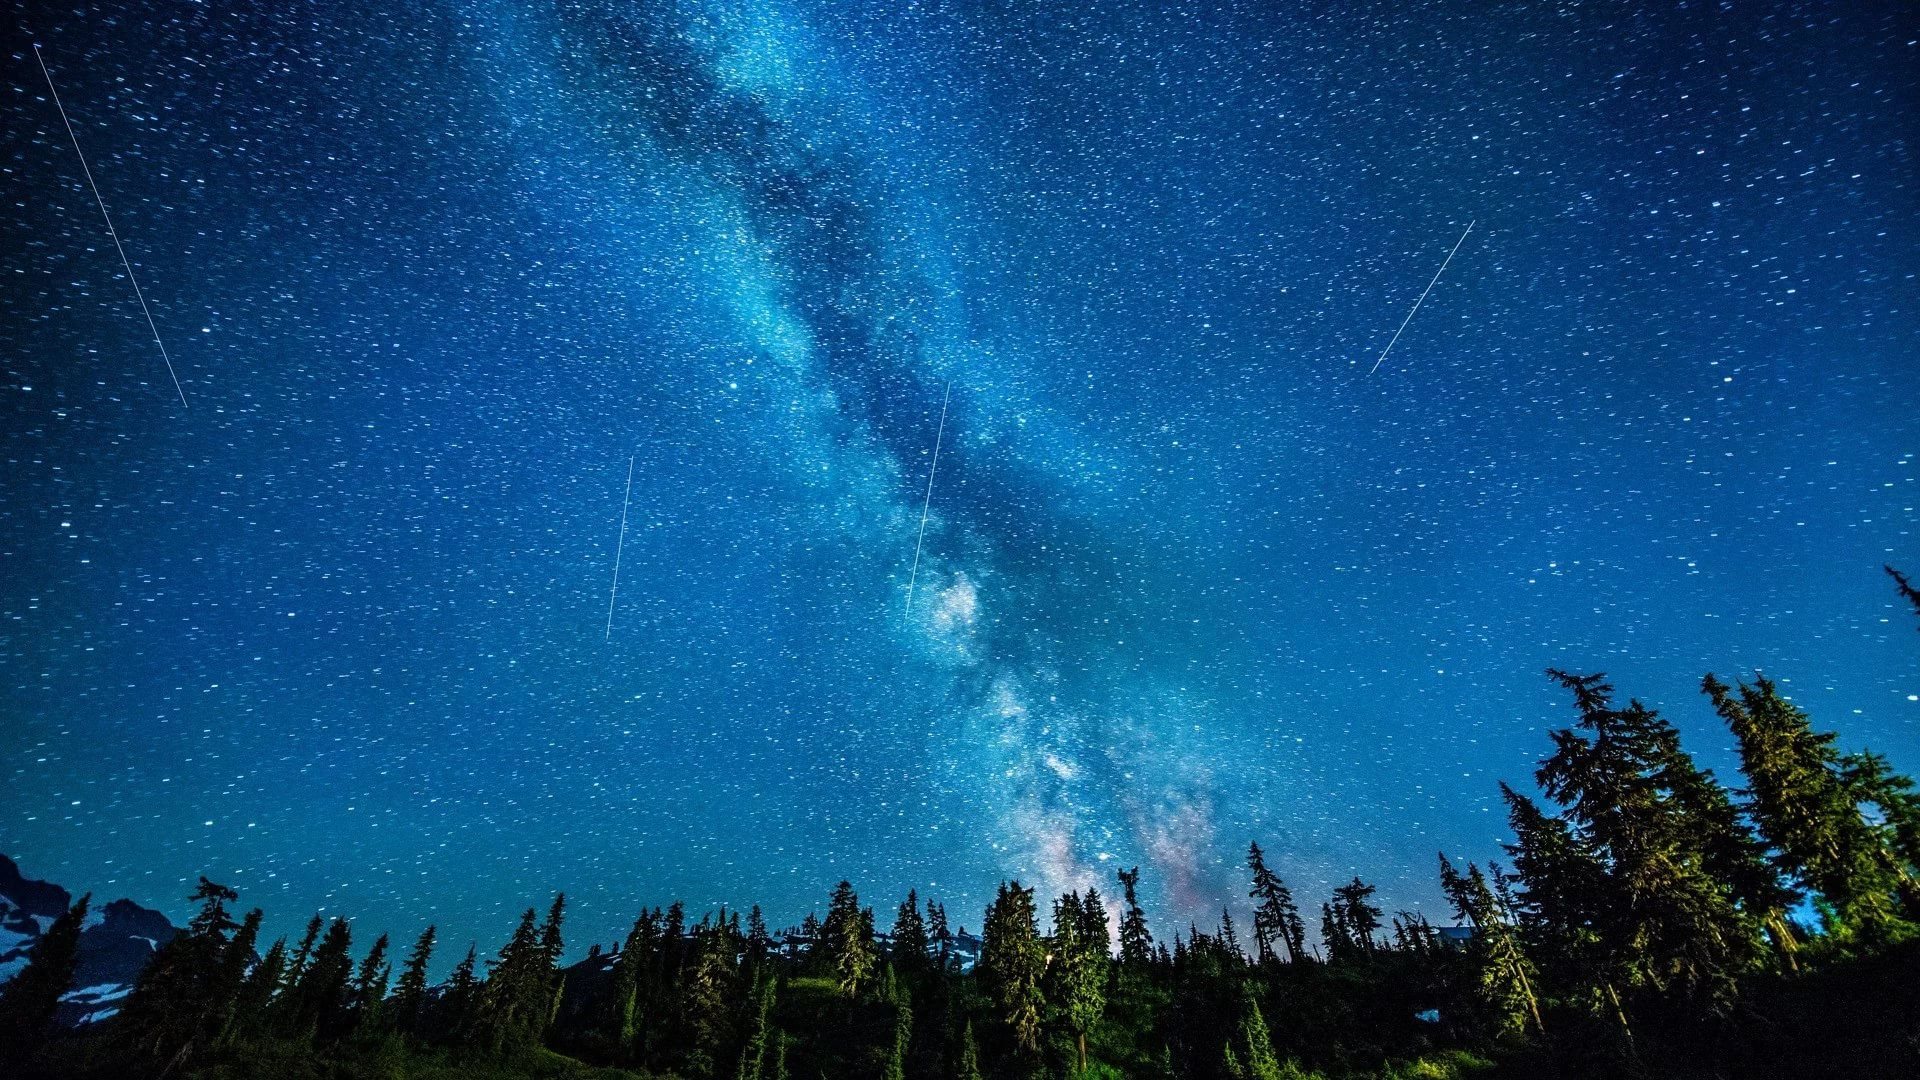 Starry Night download free wallpapers for pc in hd